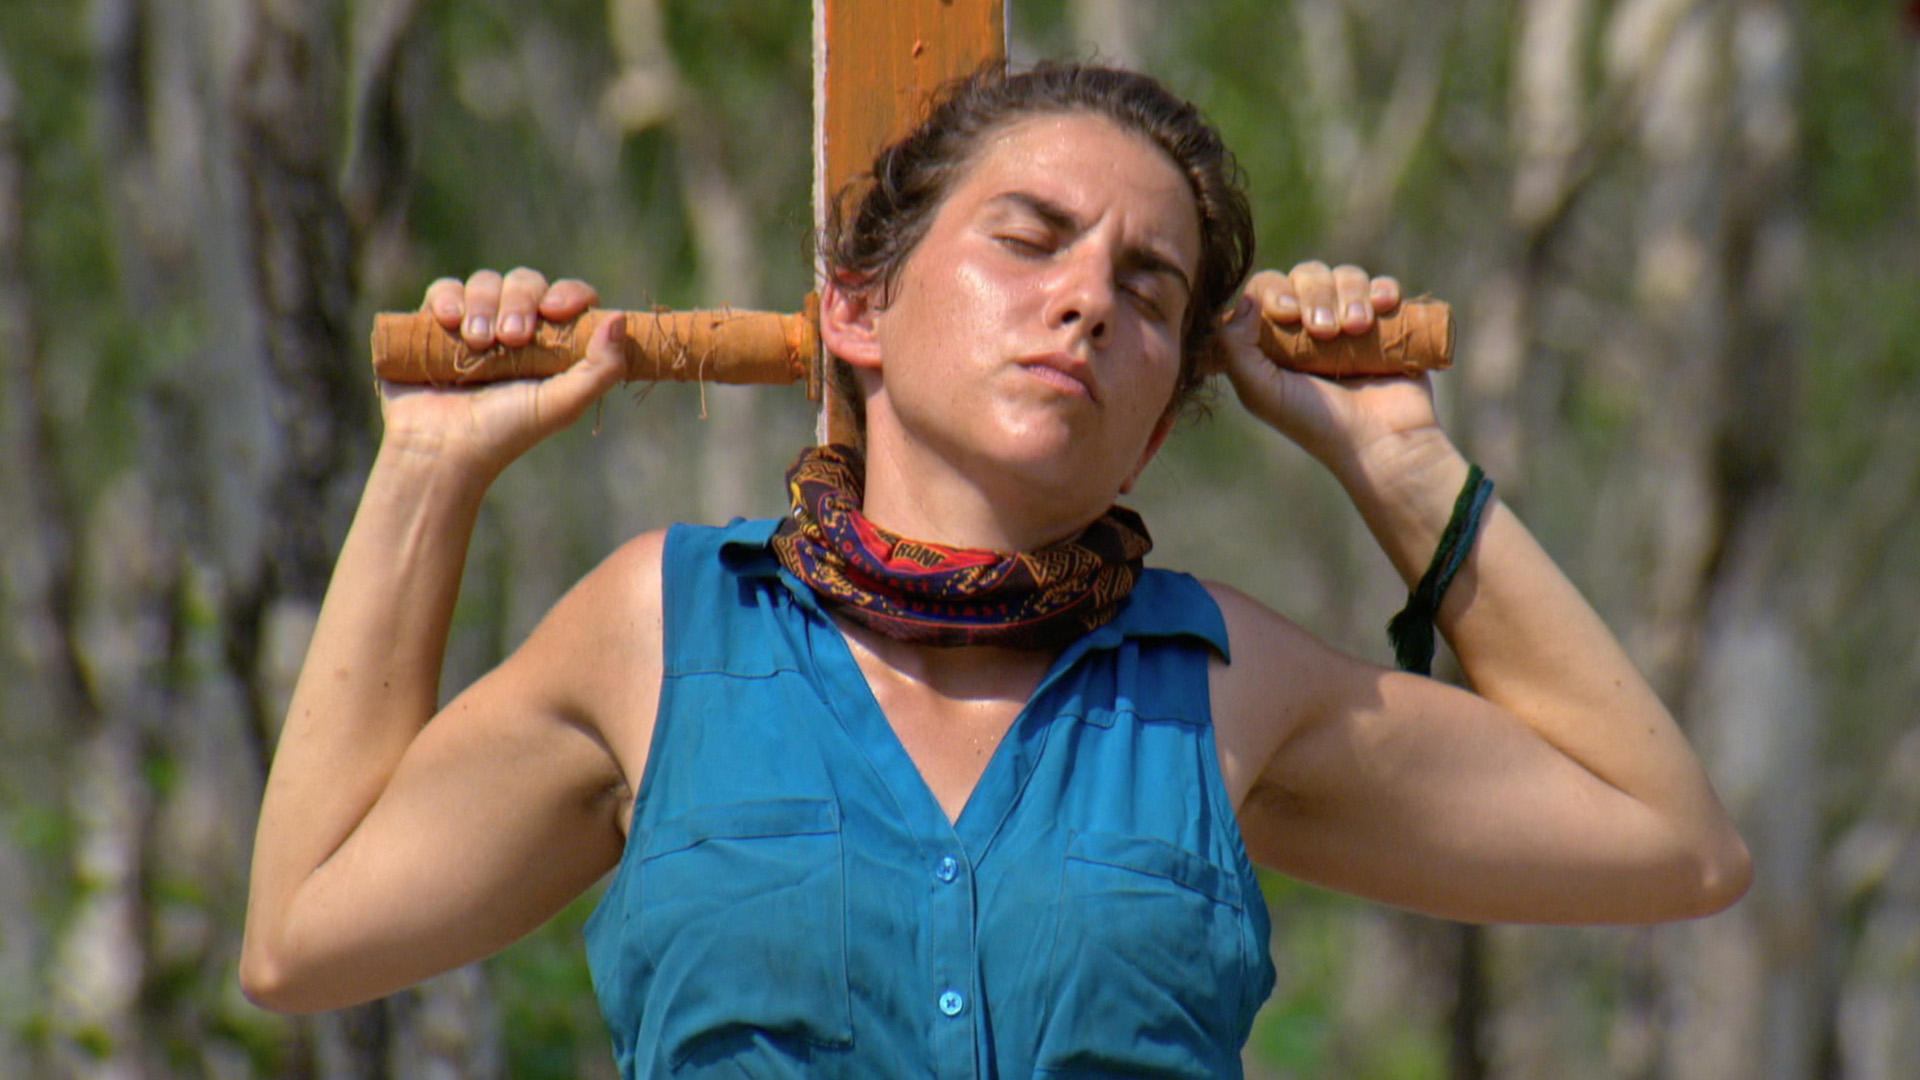 Aubry tries to find some comfort when the challenge grows tedious.